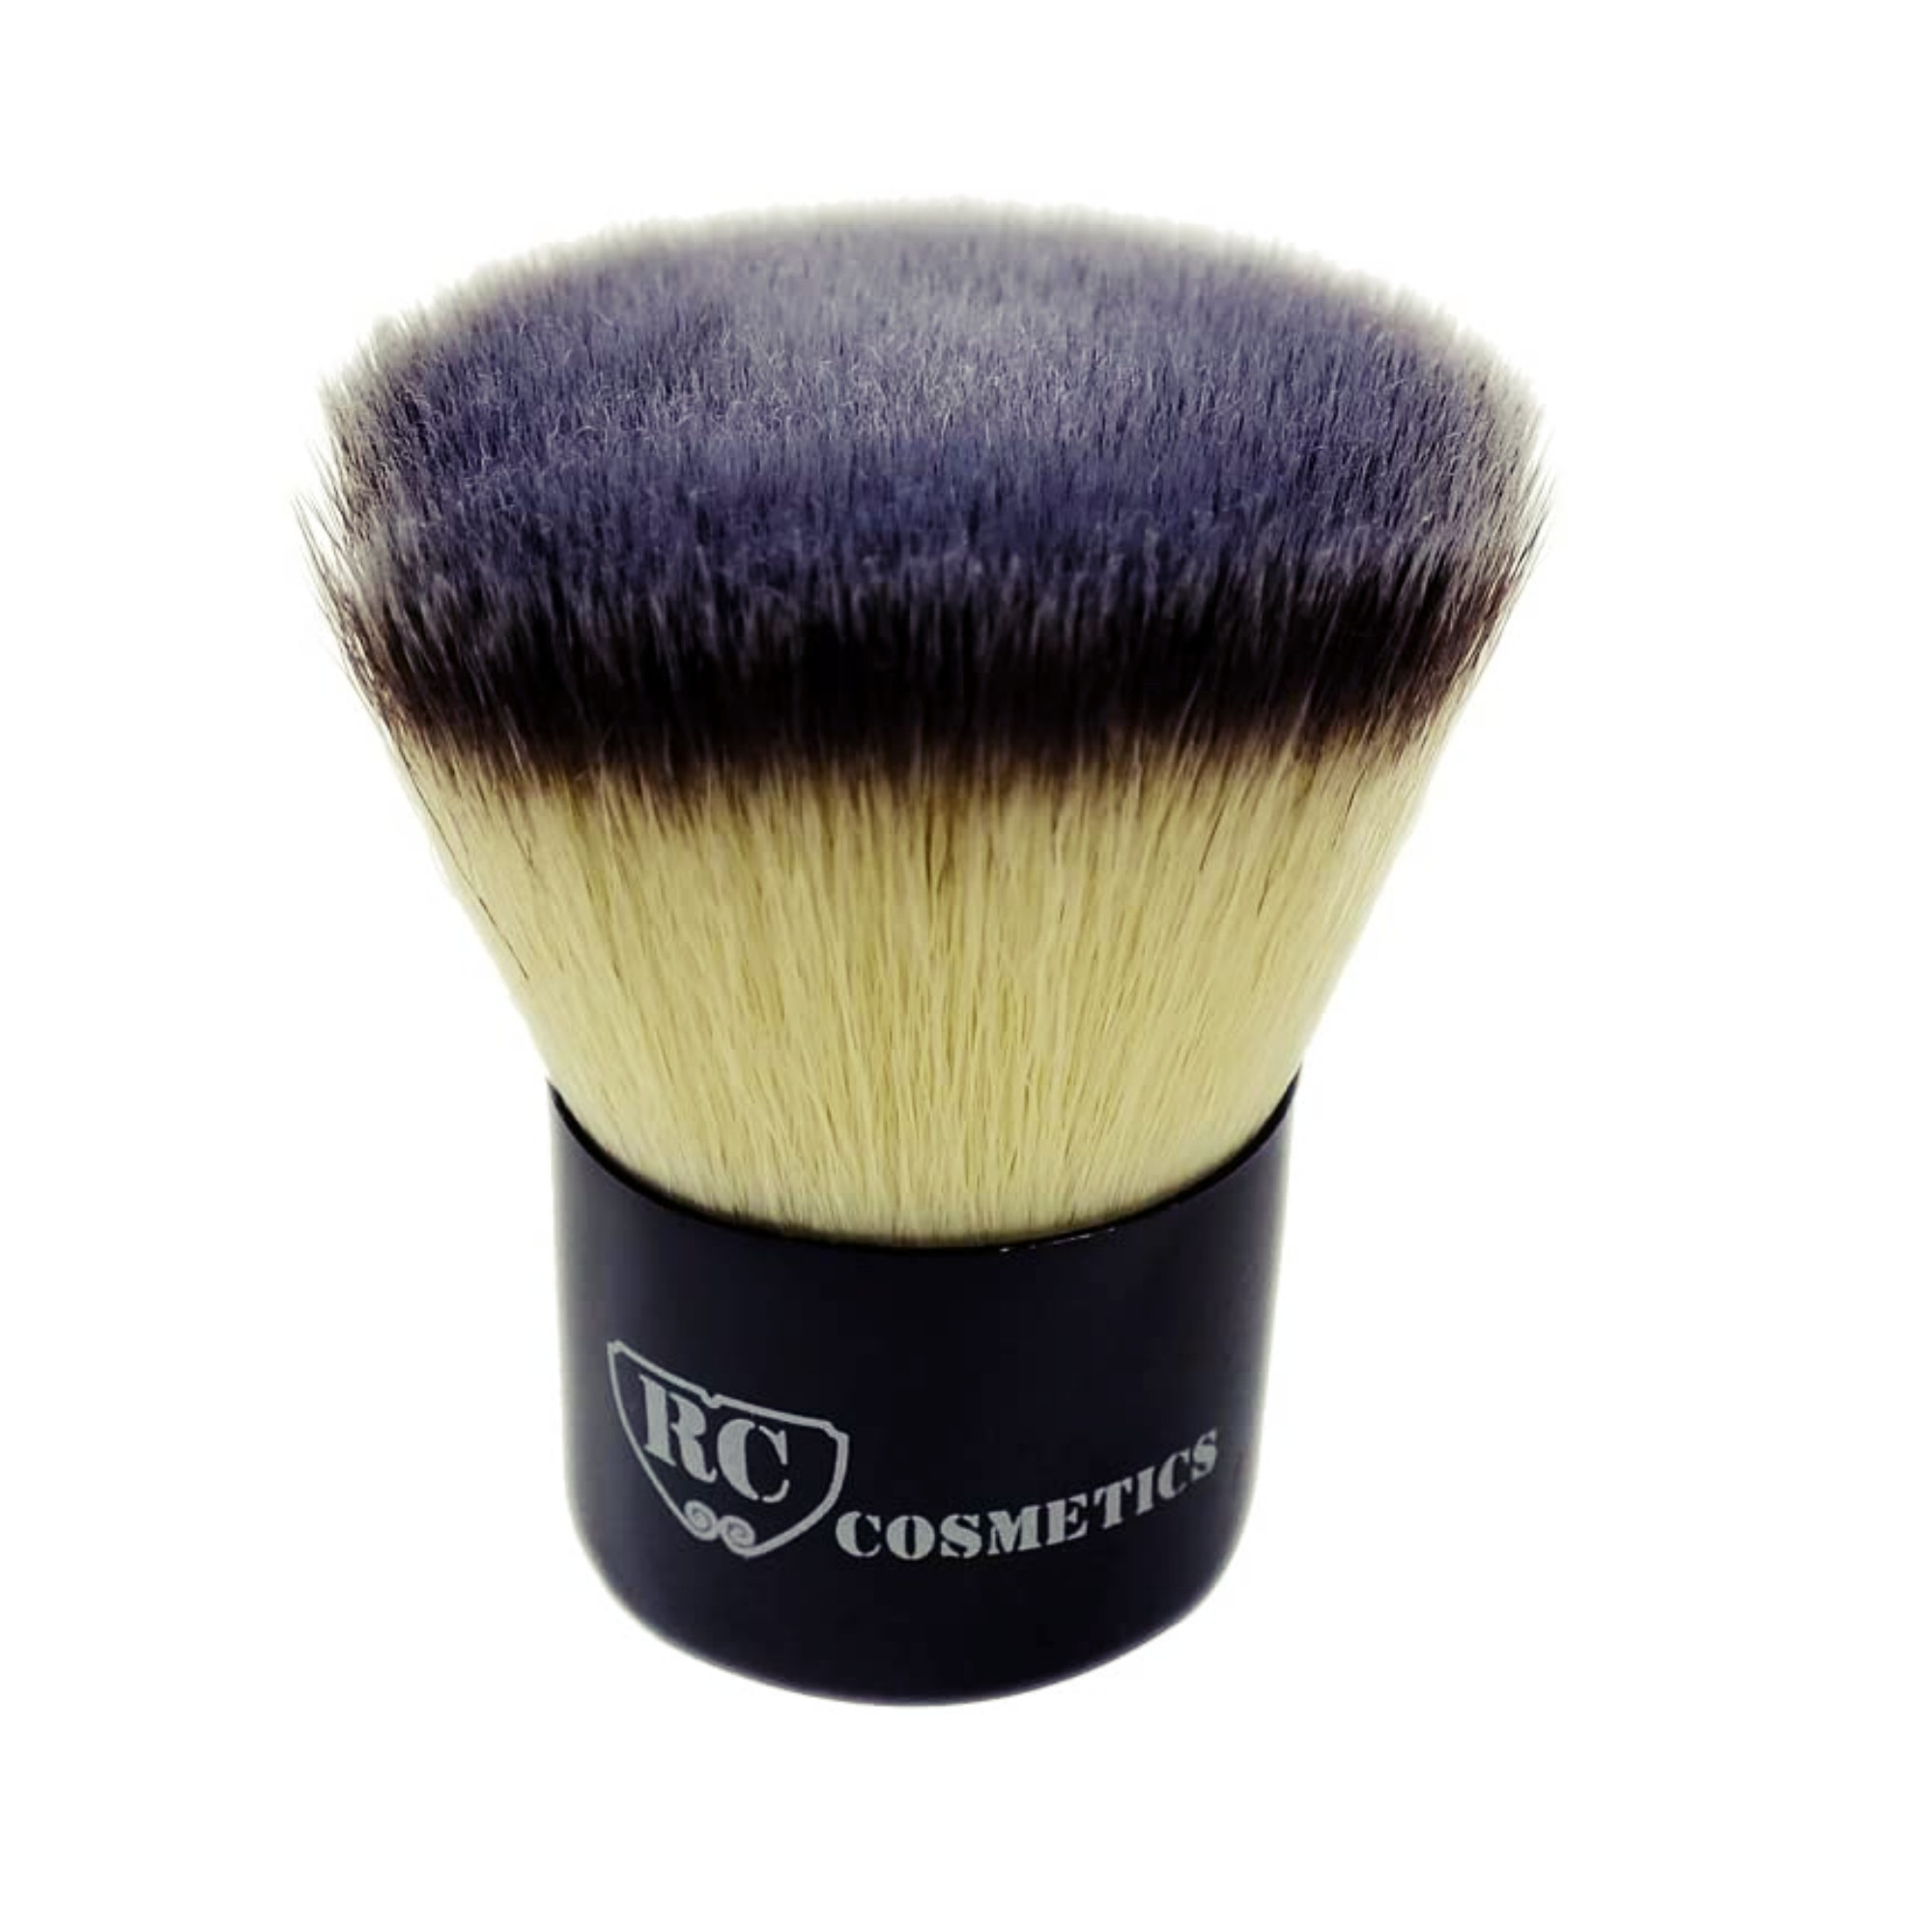 Glam Small Pro Flat Top Kabuki Brush